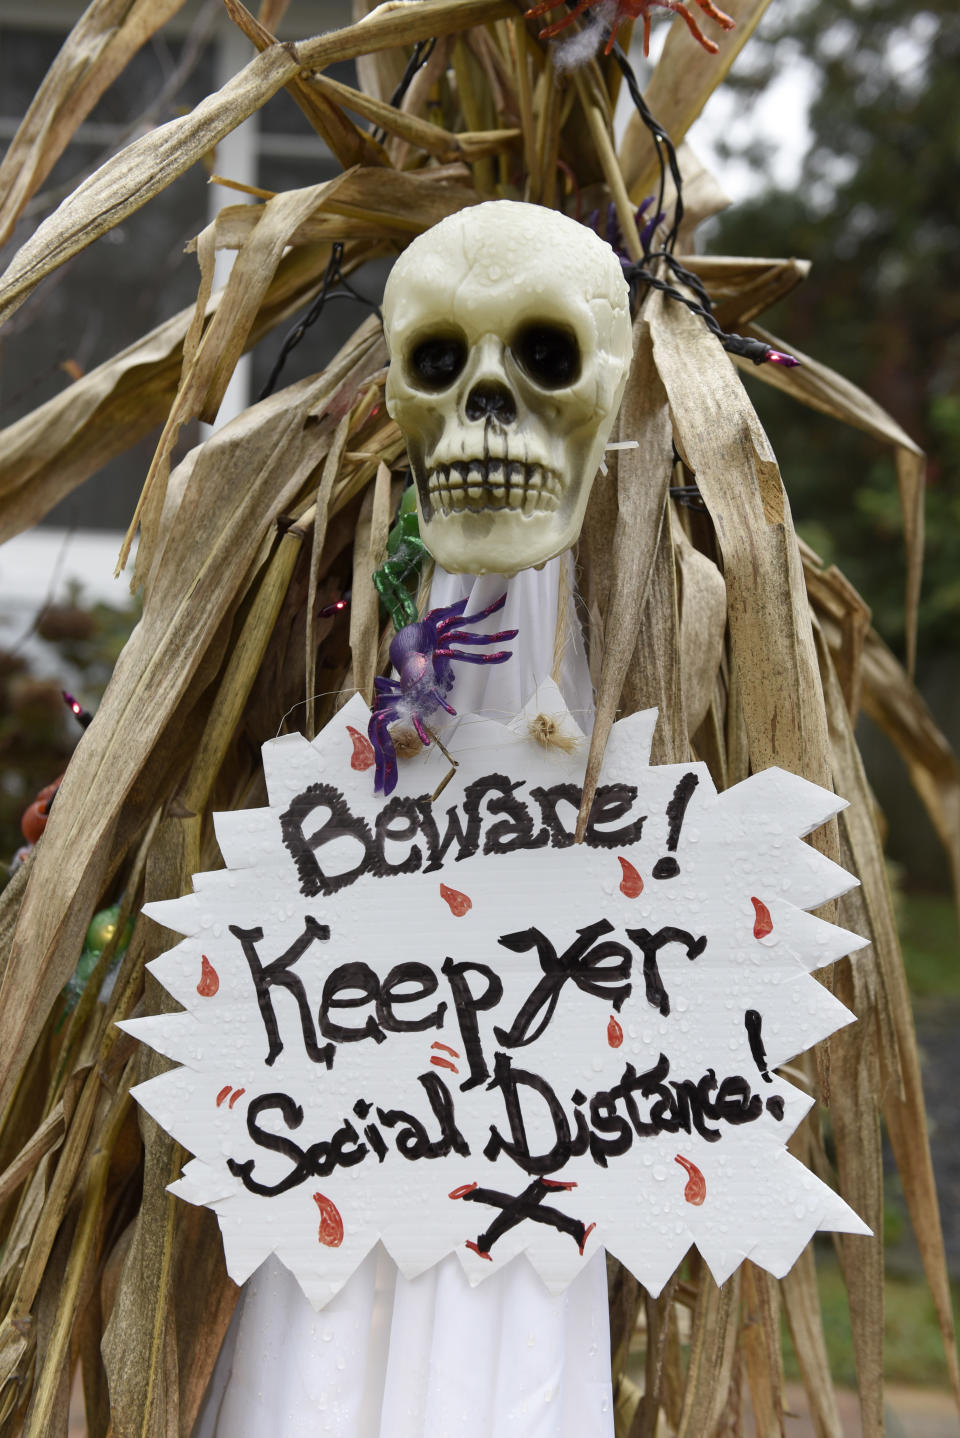 Halloween decorations are seen at the home of Carol McCarthy, reminding people to be safe while trick-or-treating during the COVID-19 pandemic, Monday, Oct. 26, 2020, in Palmyra, N.J. (AP Photo/Michael Perez)